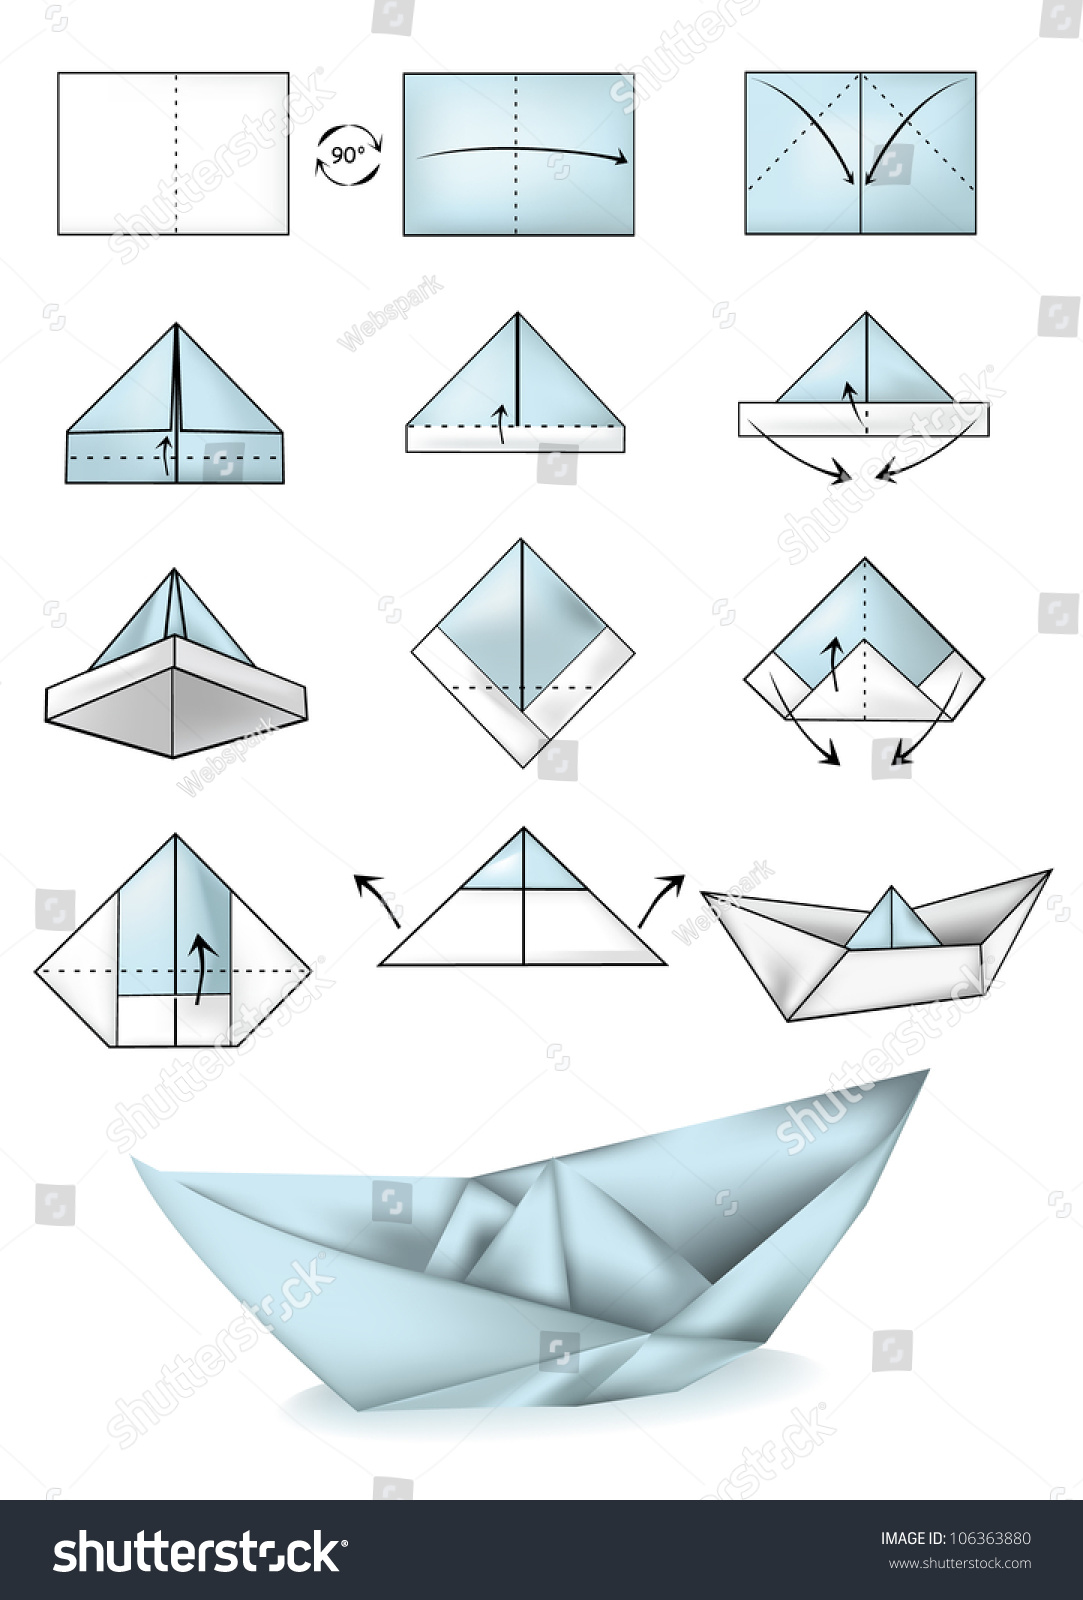 Step By Step Instructions How To Make Origami A Boat ...